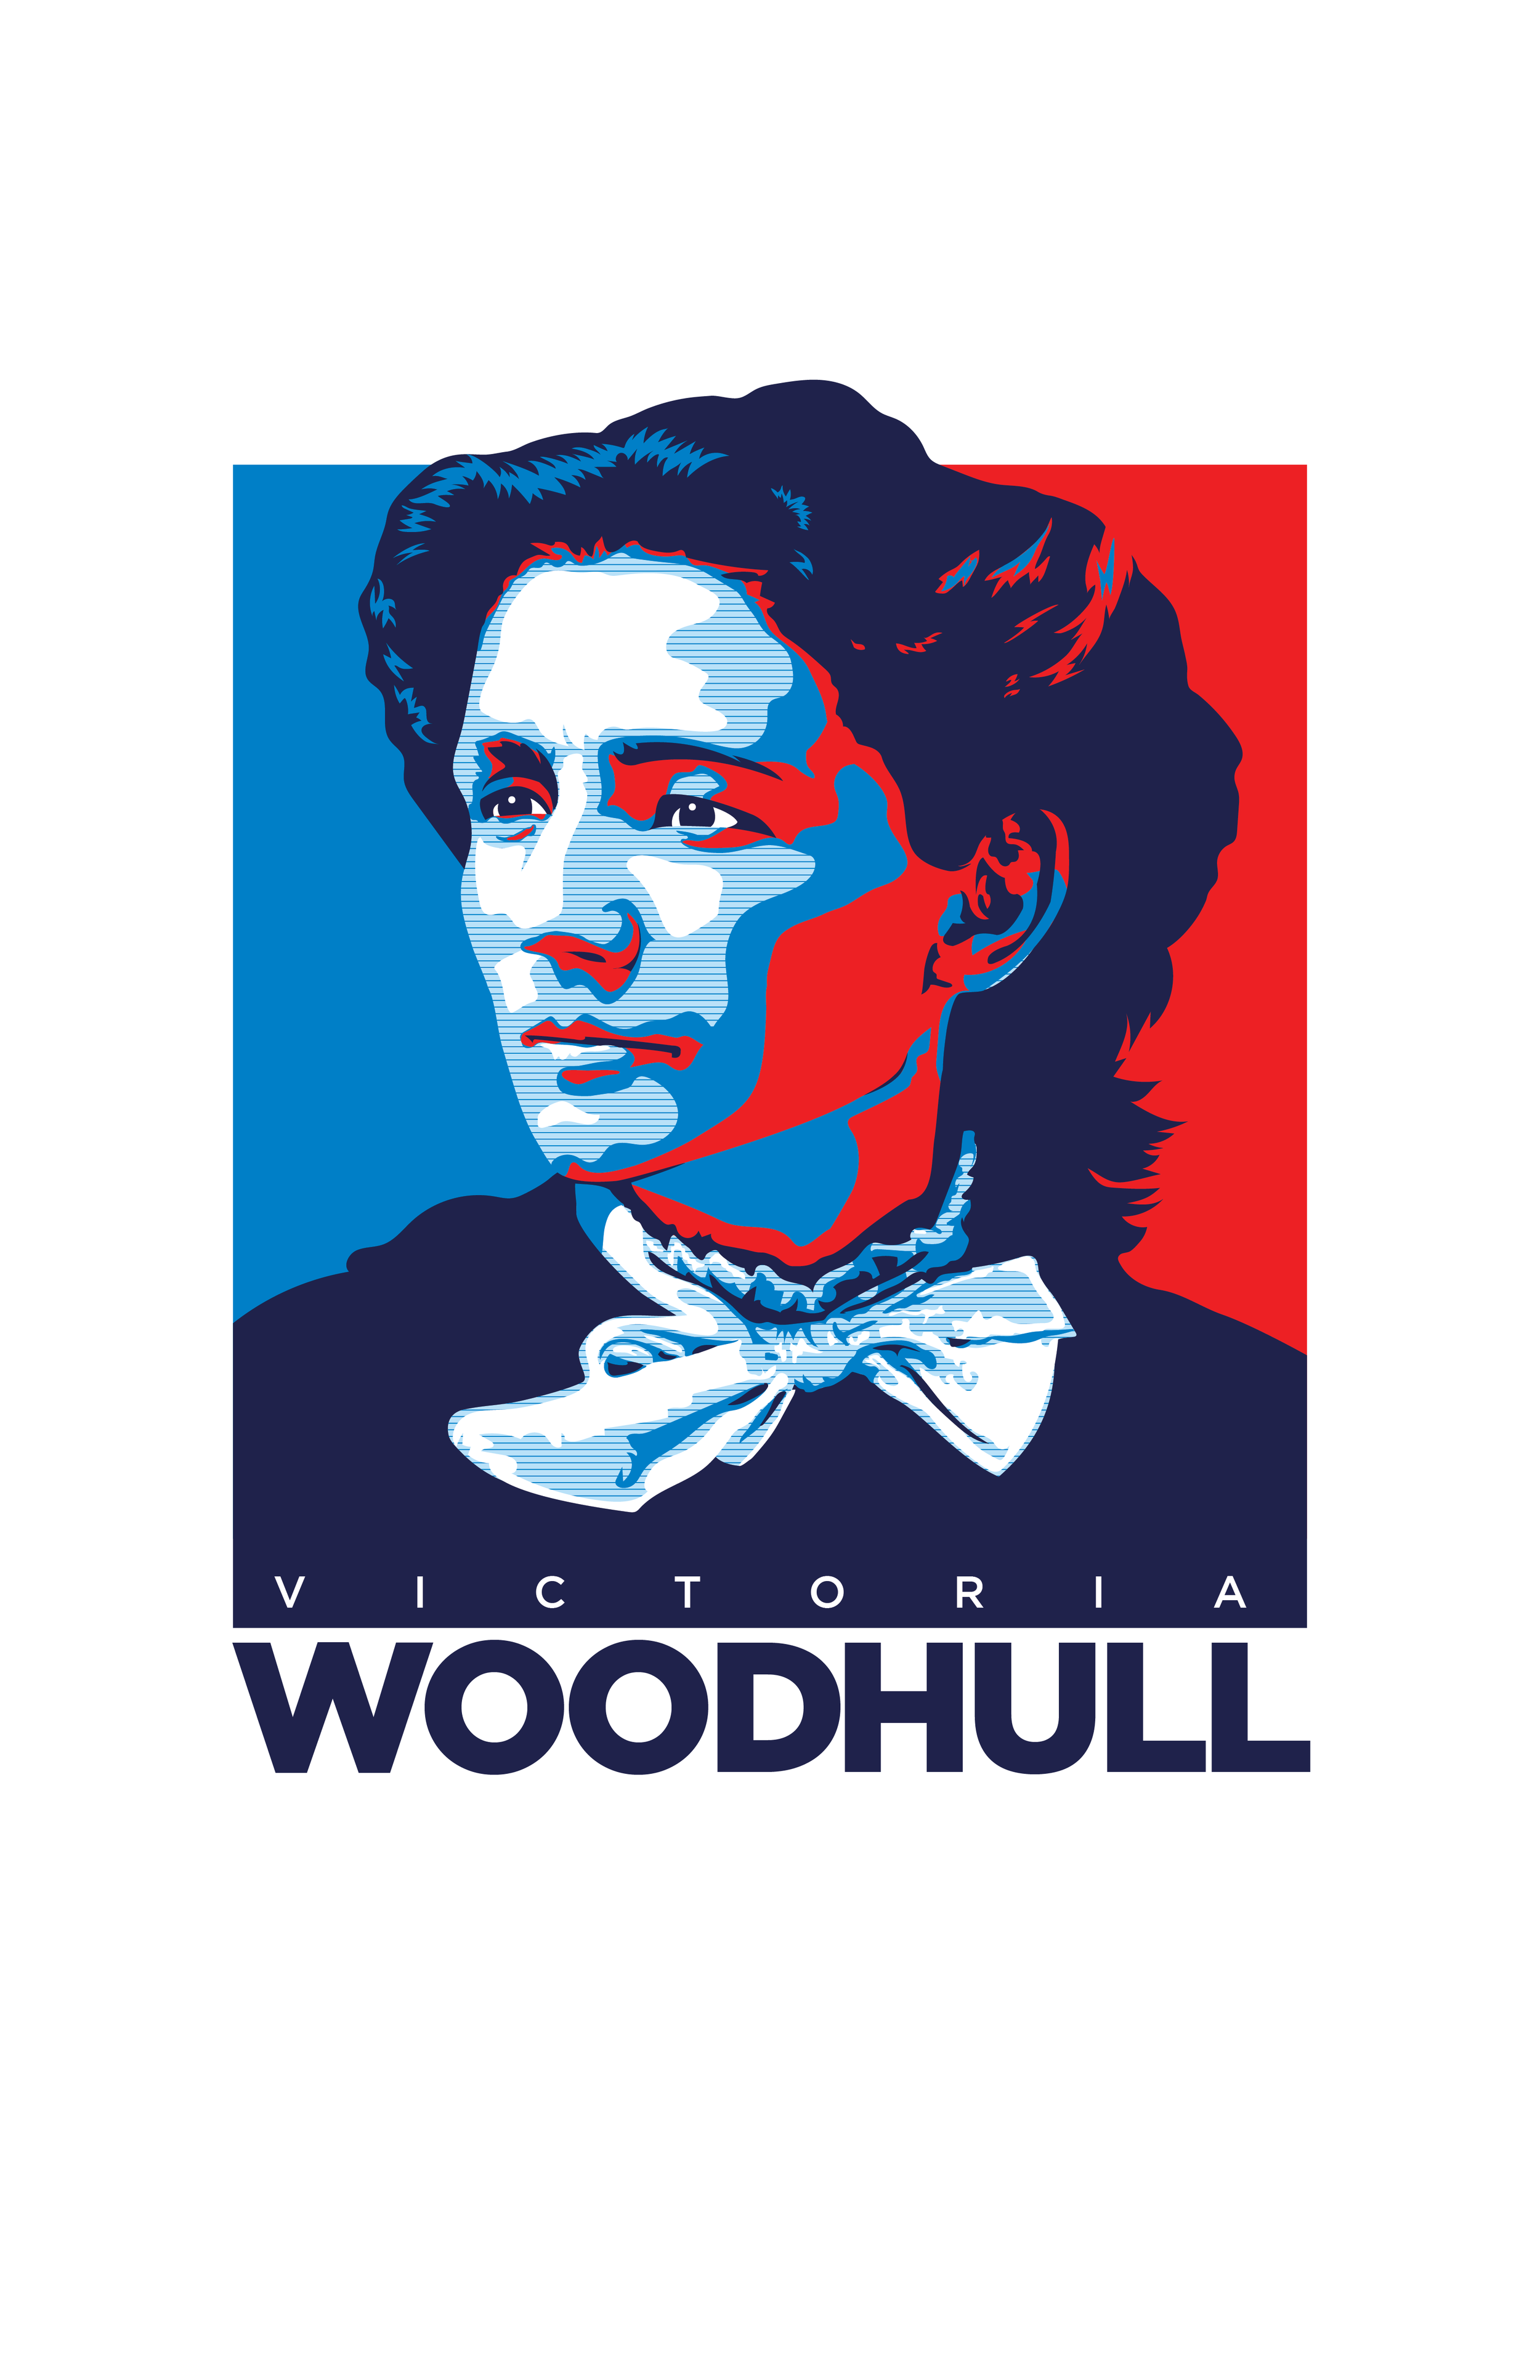 Leader-portrait-WOODHULL-6-working-01.png